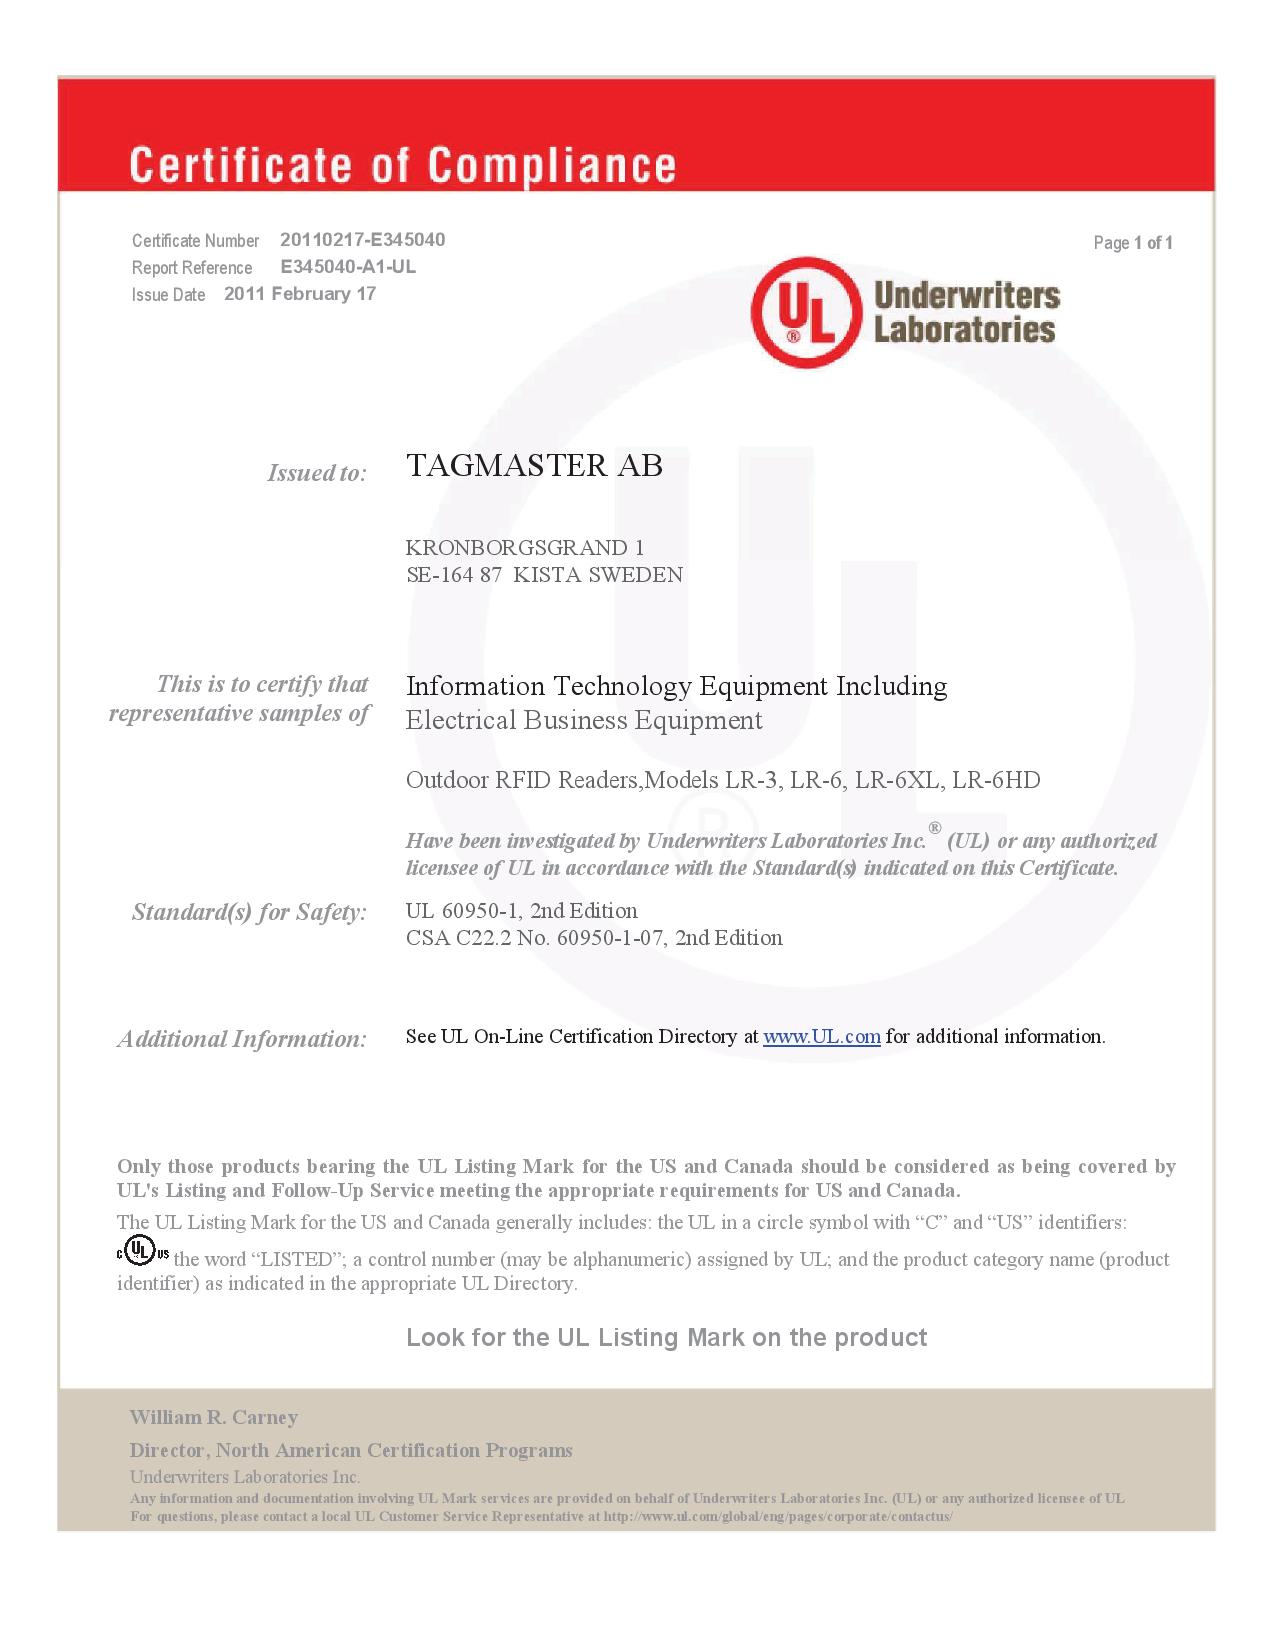 Ul Certificate Of Compliance Identification Solutions Long Range